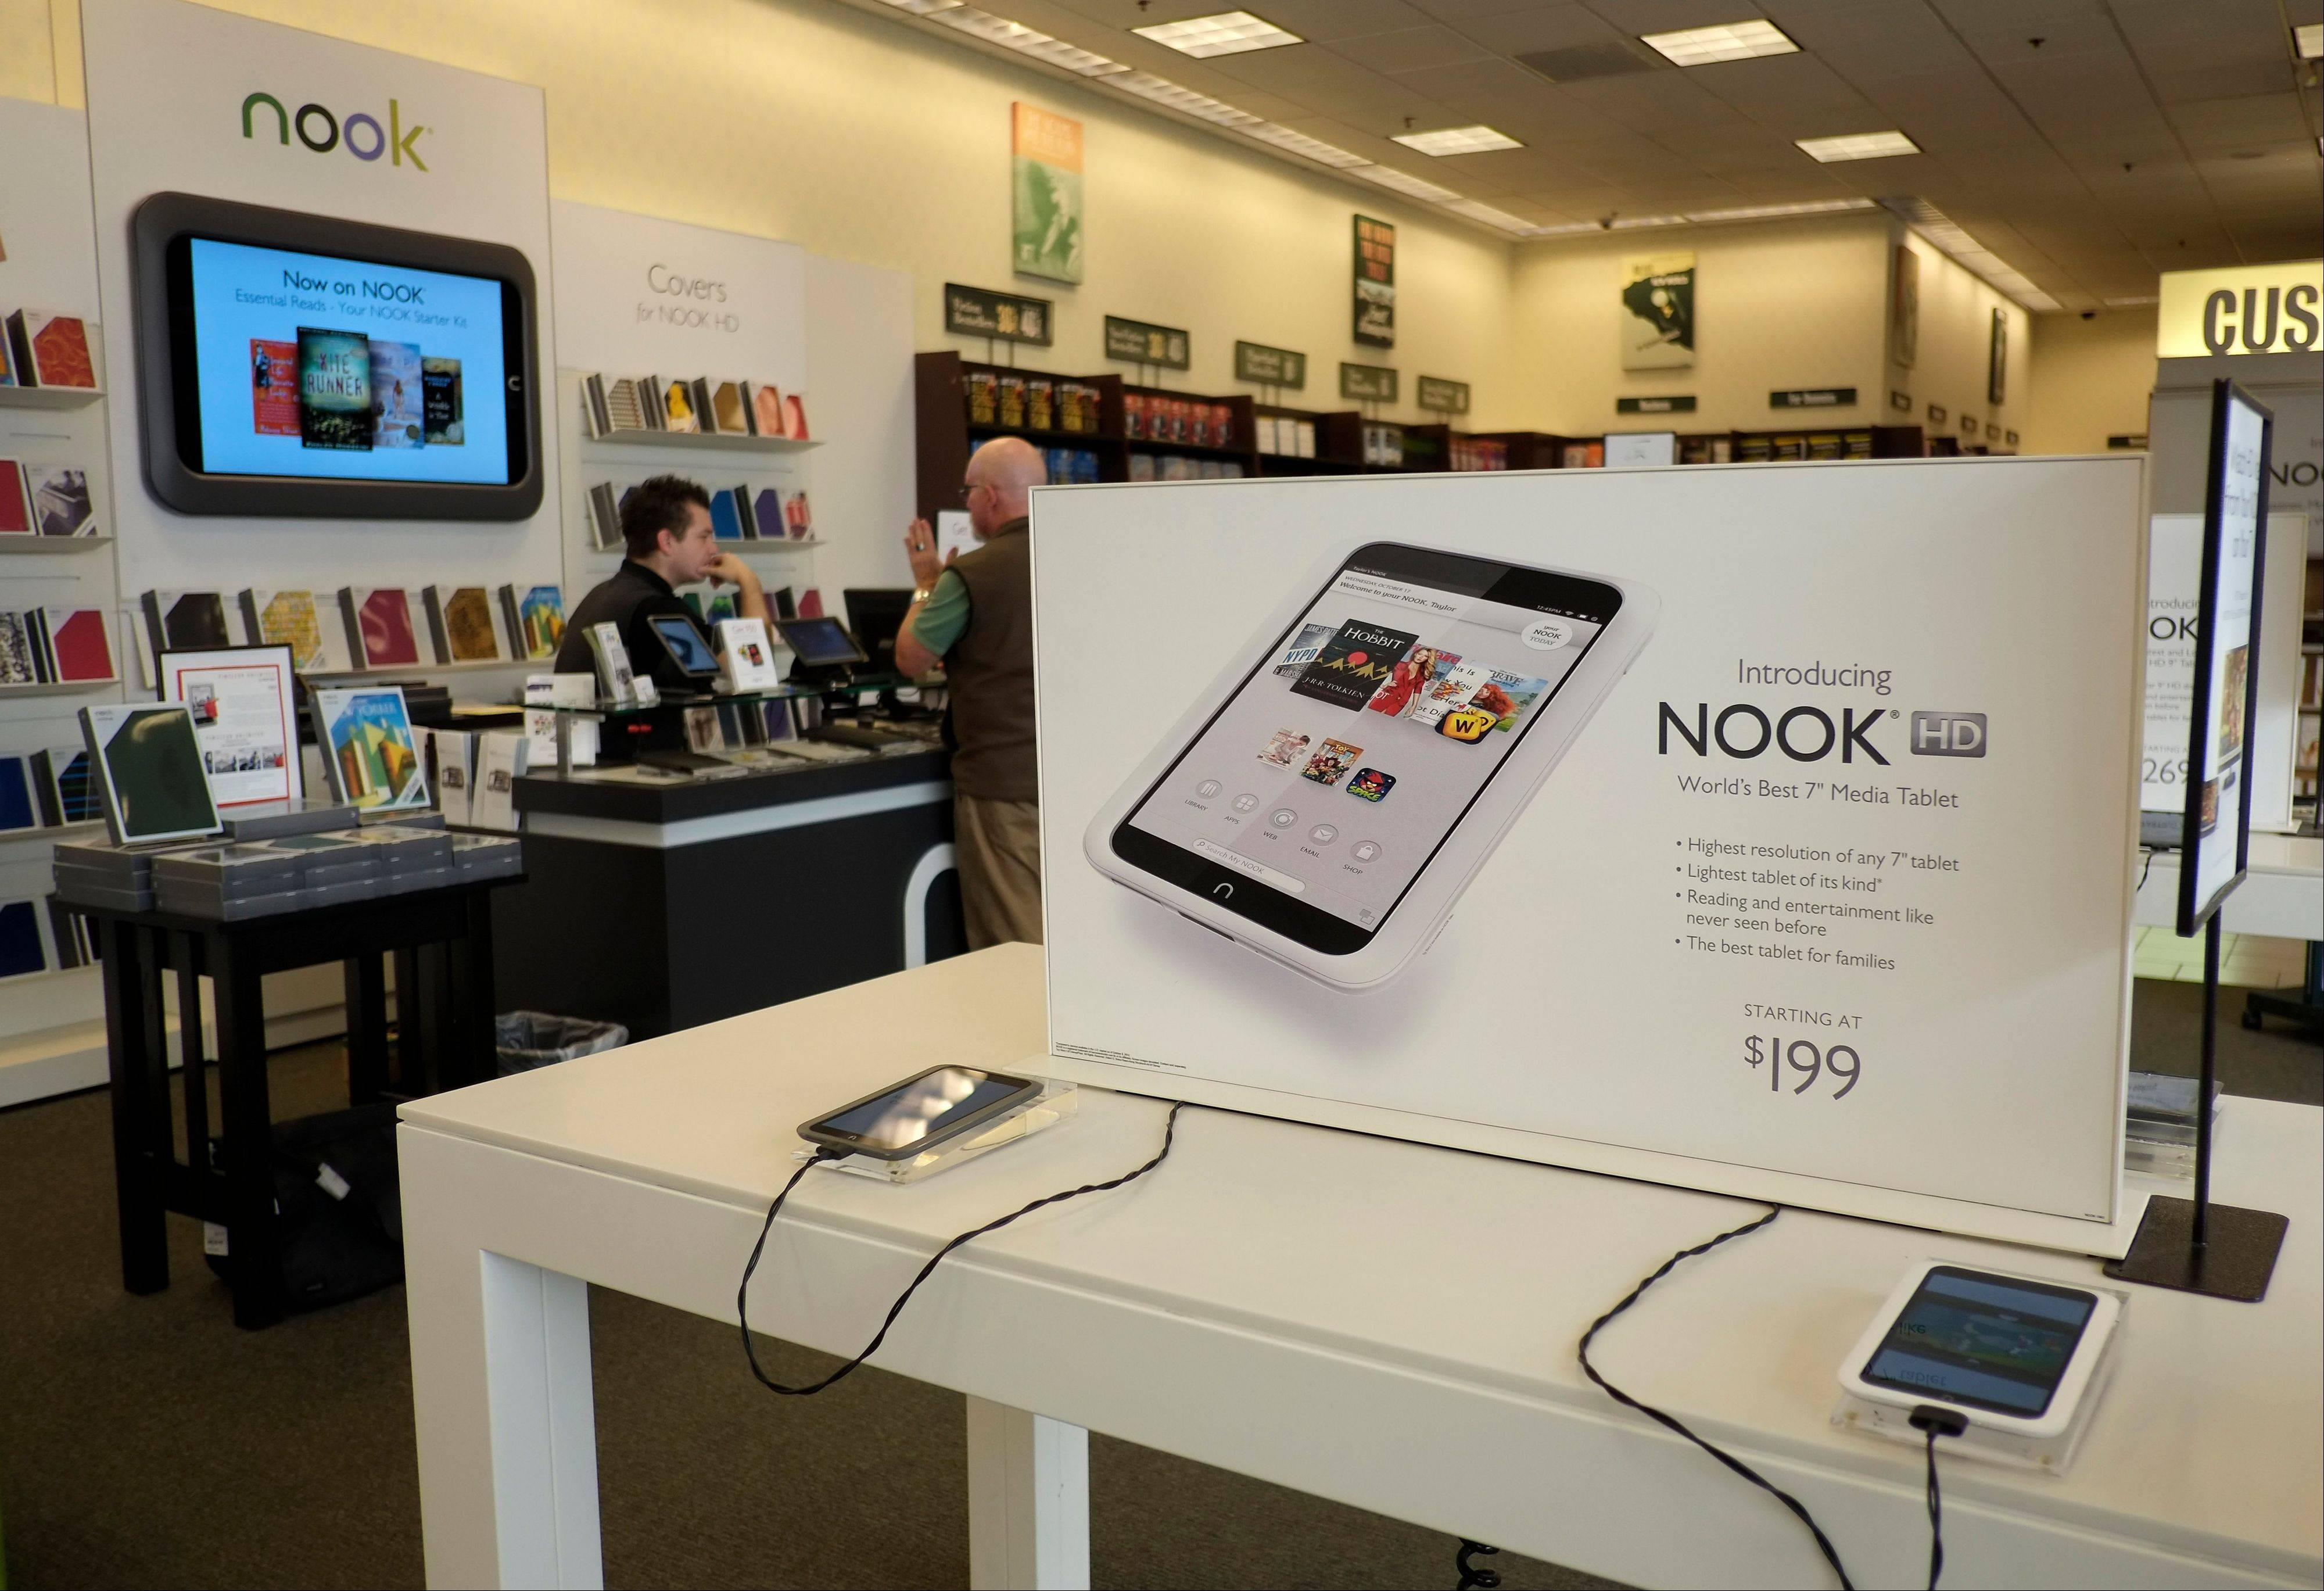 Barnes & Noble is teaming up with Google to vastly increase the number of apps available on its Nook HD tablets. The bookstore chain says it will add Google�s Play app store to its Nook HD and HD+ products via a software update on Friday.